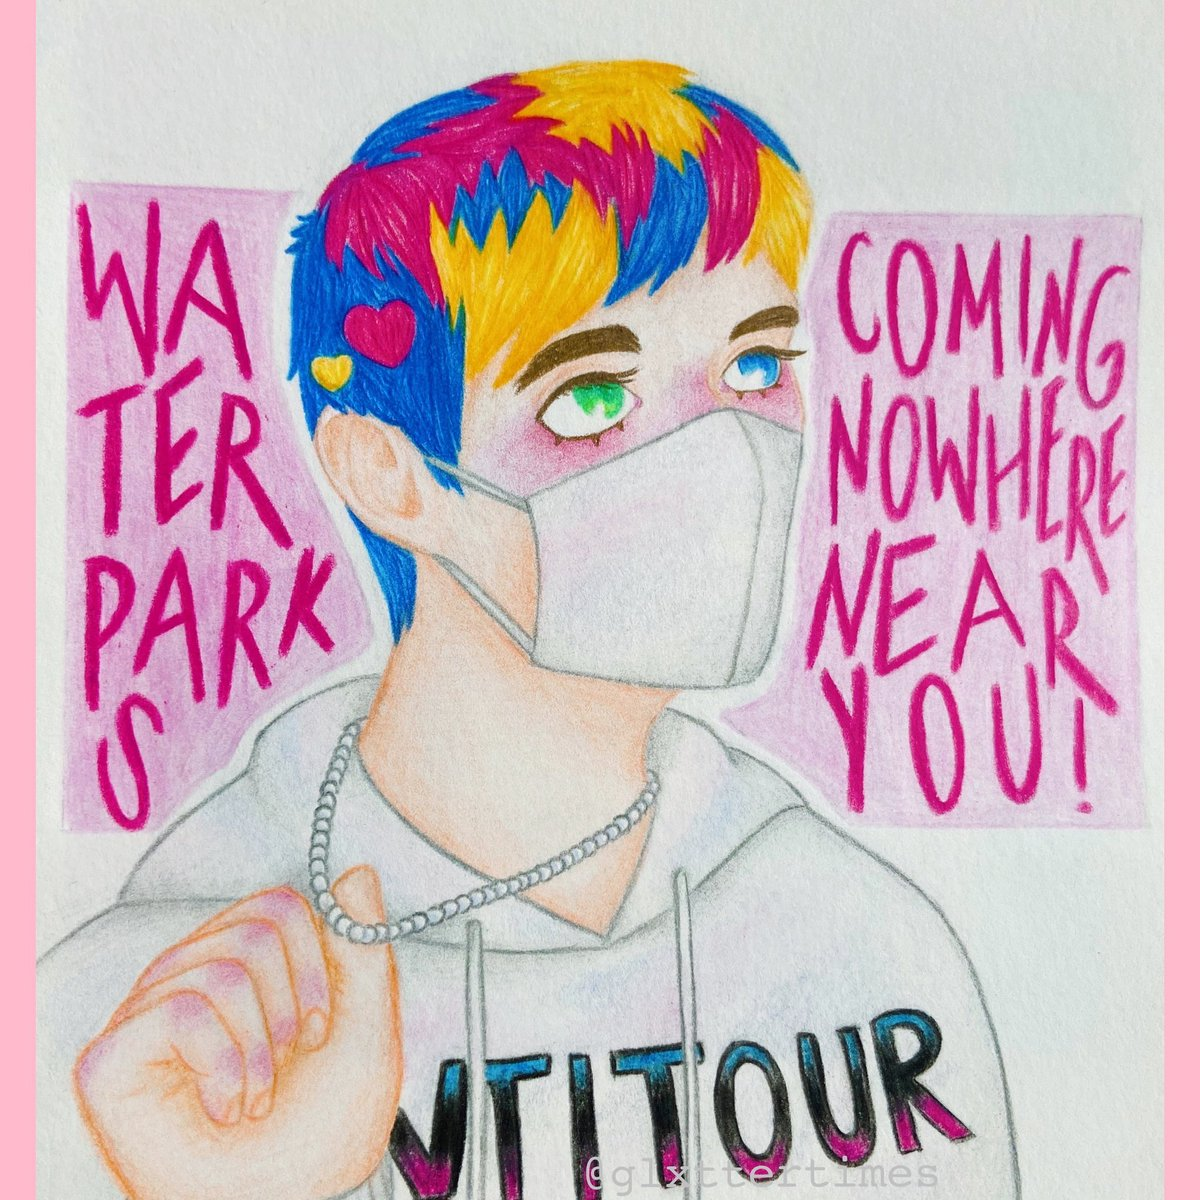 ✨💗🧲💗✨ - this is for a dtiys on insta that i participated in!💕 - @awsten @waterparks #awstenknight #waterparks #parx #lowkeyashell #art #dtiys